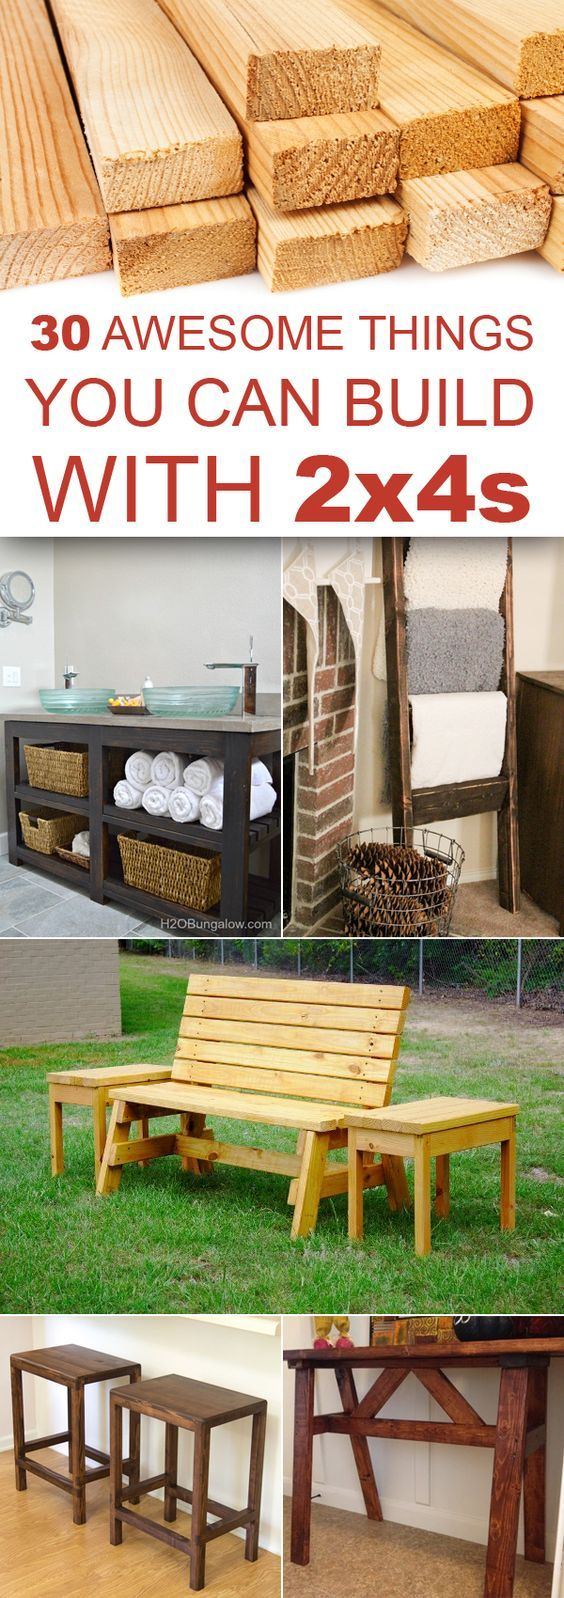 25 best ideas about diy wood projects on pinterest wood